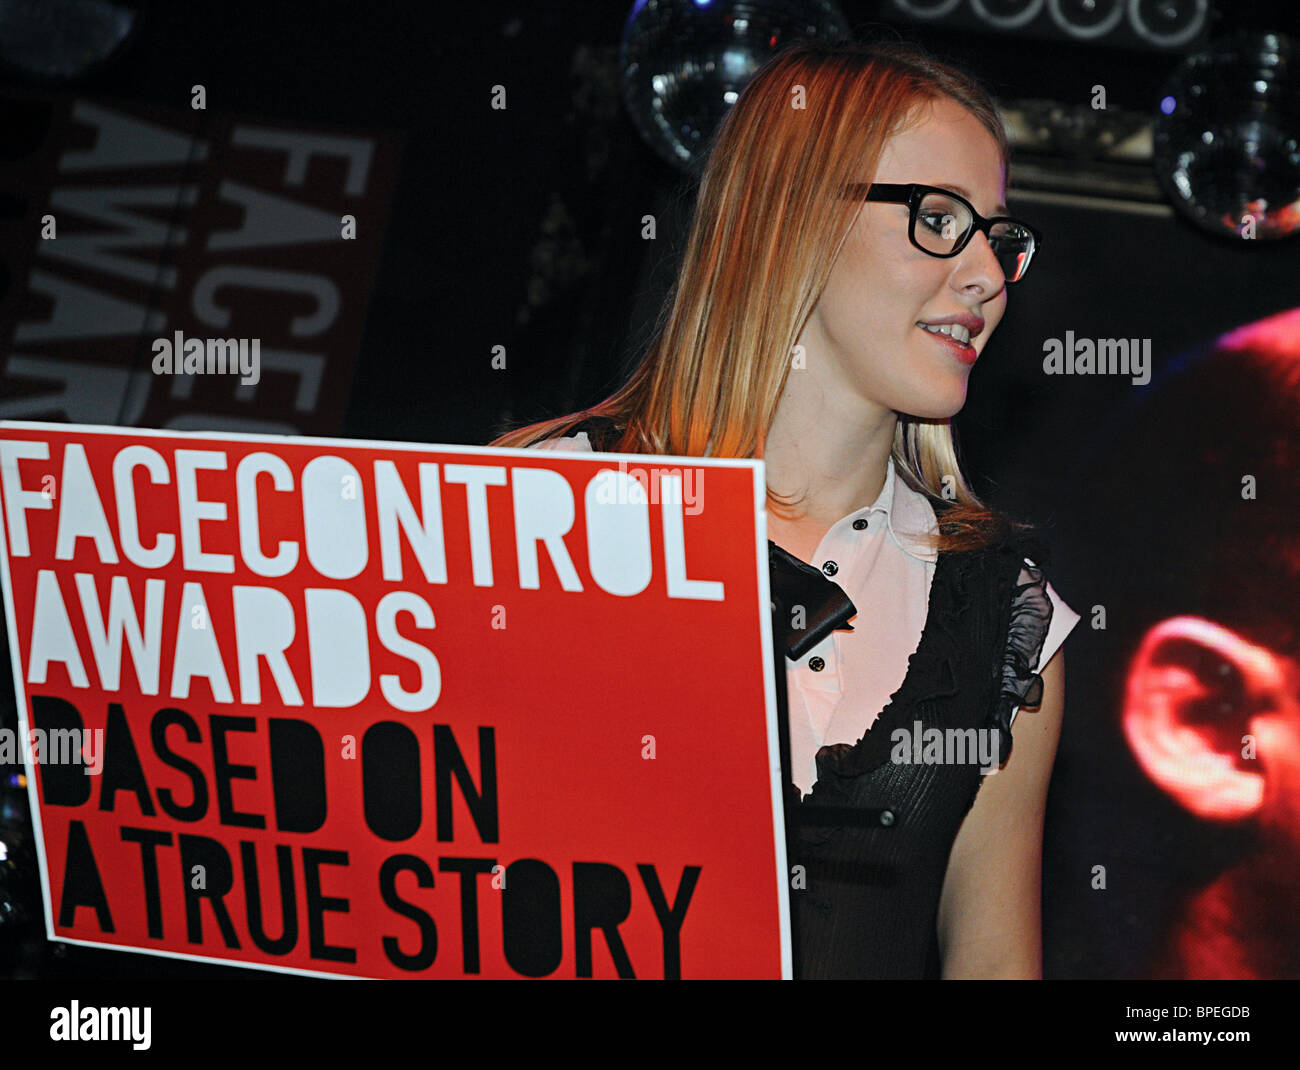 Facecontrol Awards presented to celeb photographers in Moscow - Stock Image